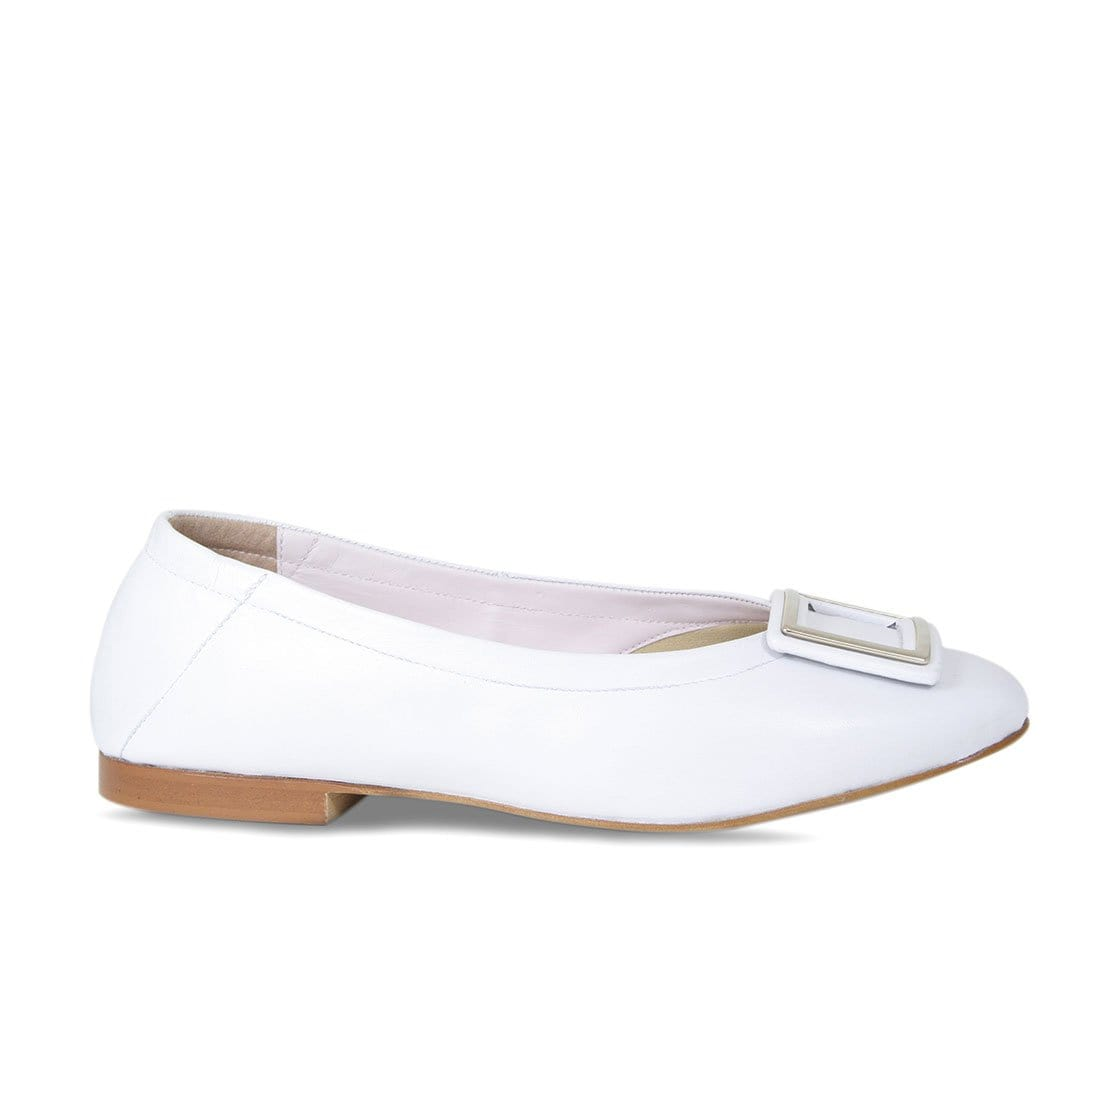 White Leather Ballet Flat with Buckle